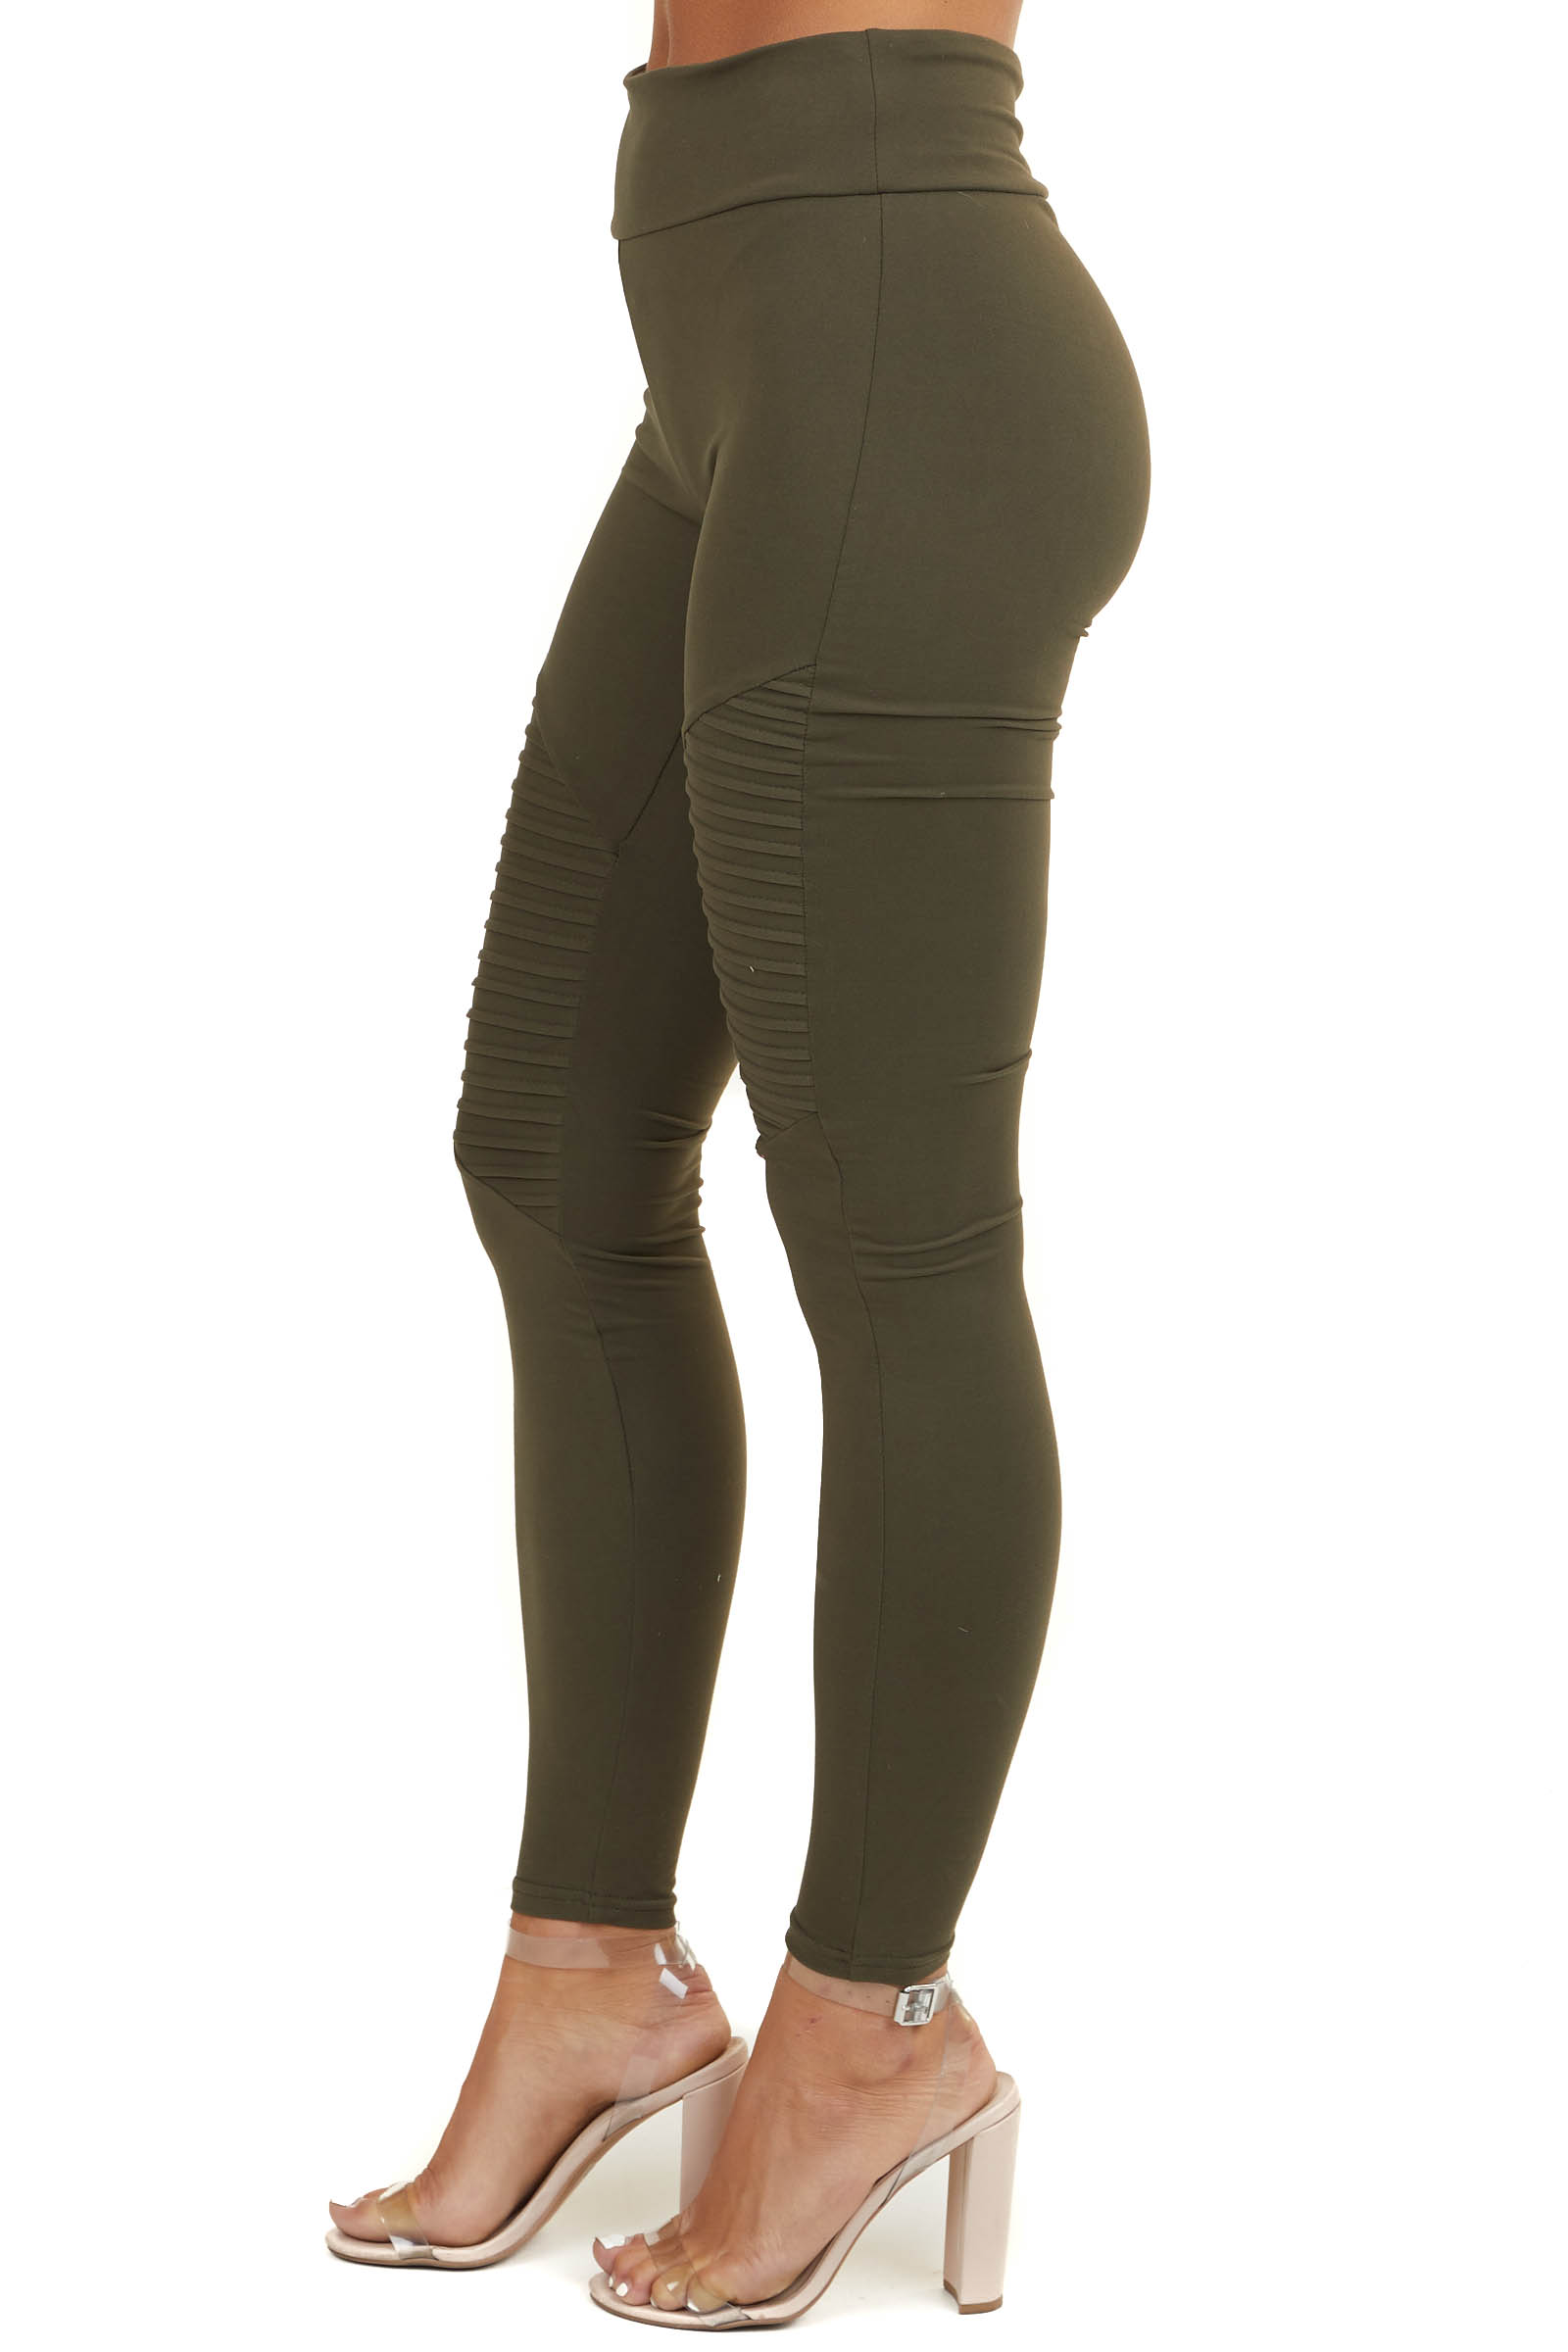 Olive Green High Waisted Stretchy Moto Leggings